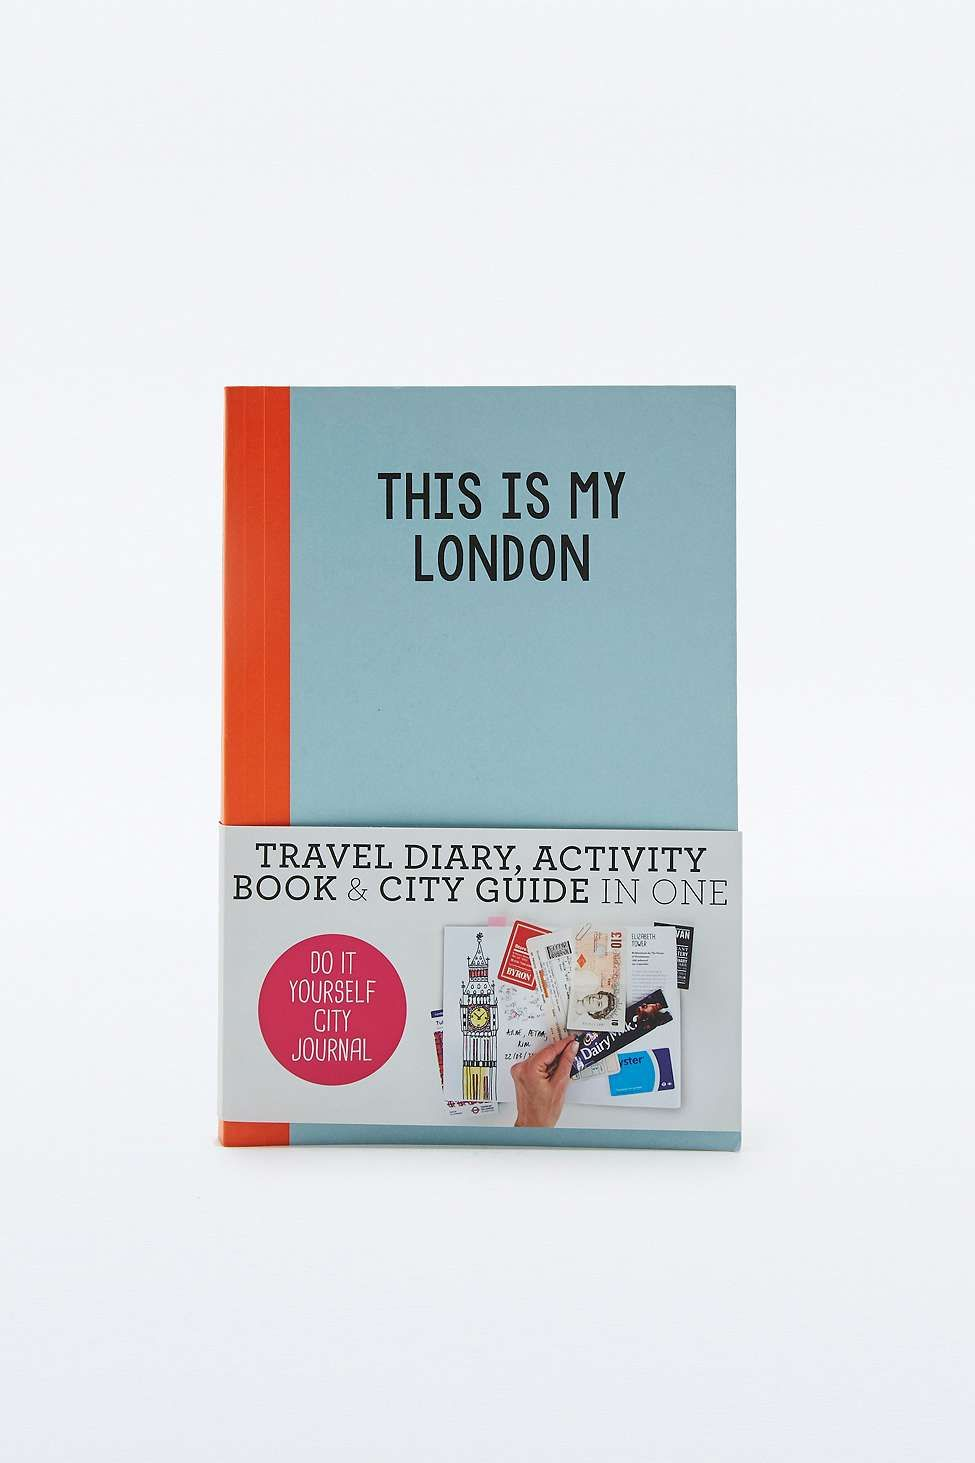 For me this is my london do it yourself city journalurban this is my london do it yourself city journal solutioingenieria Choice Image